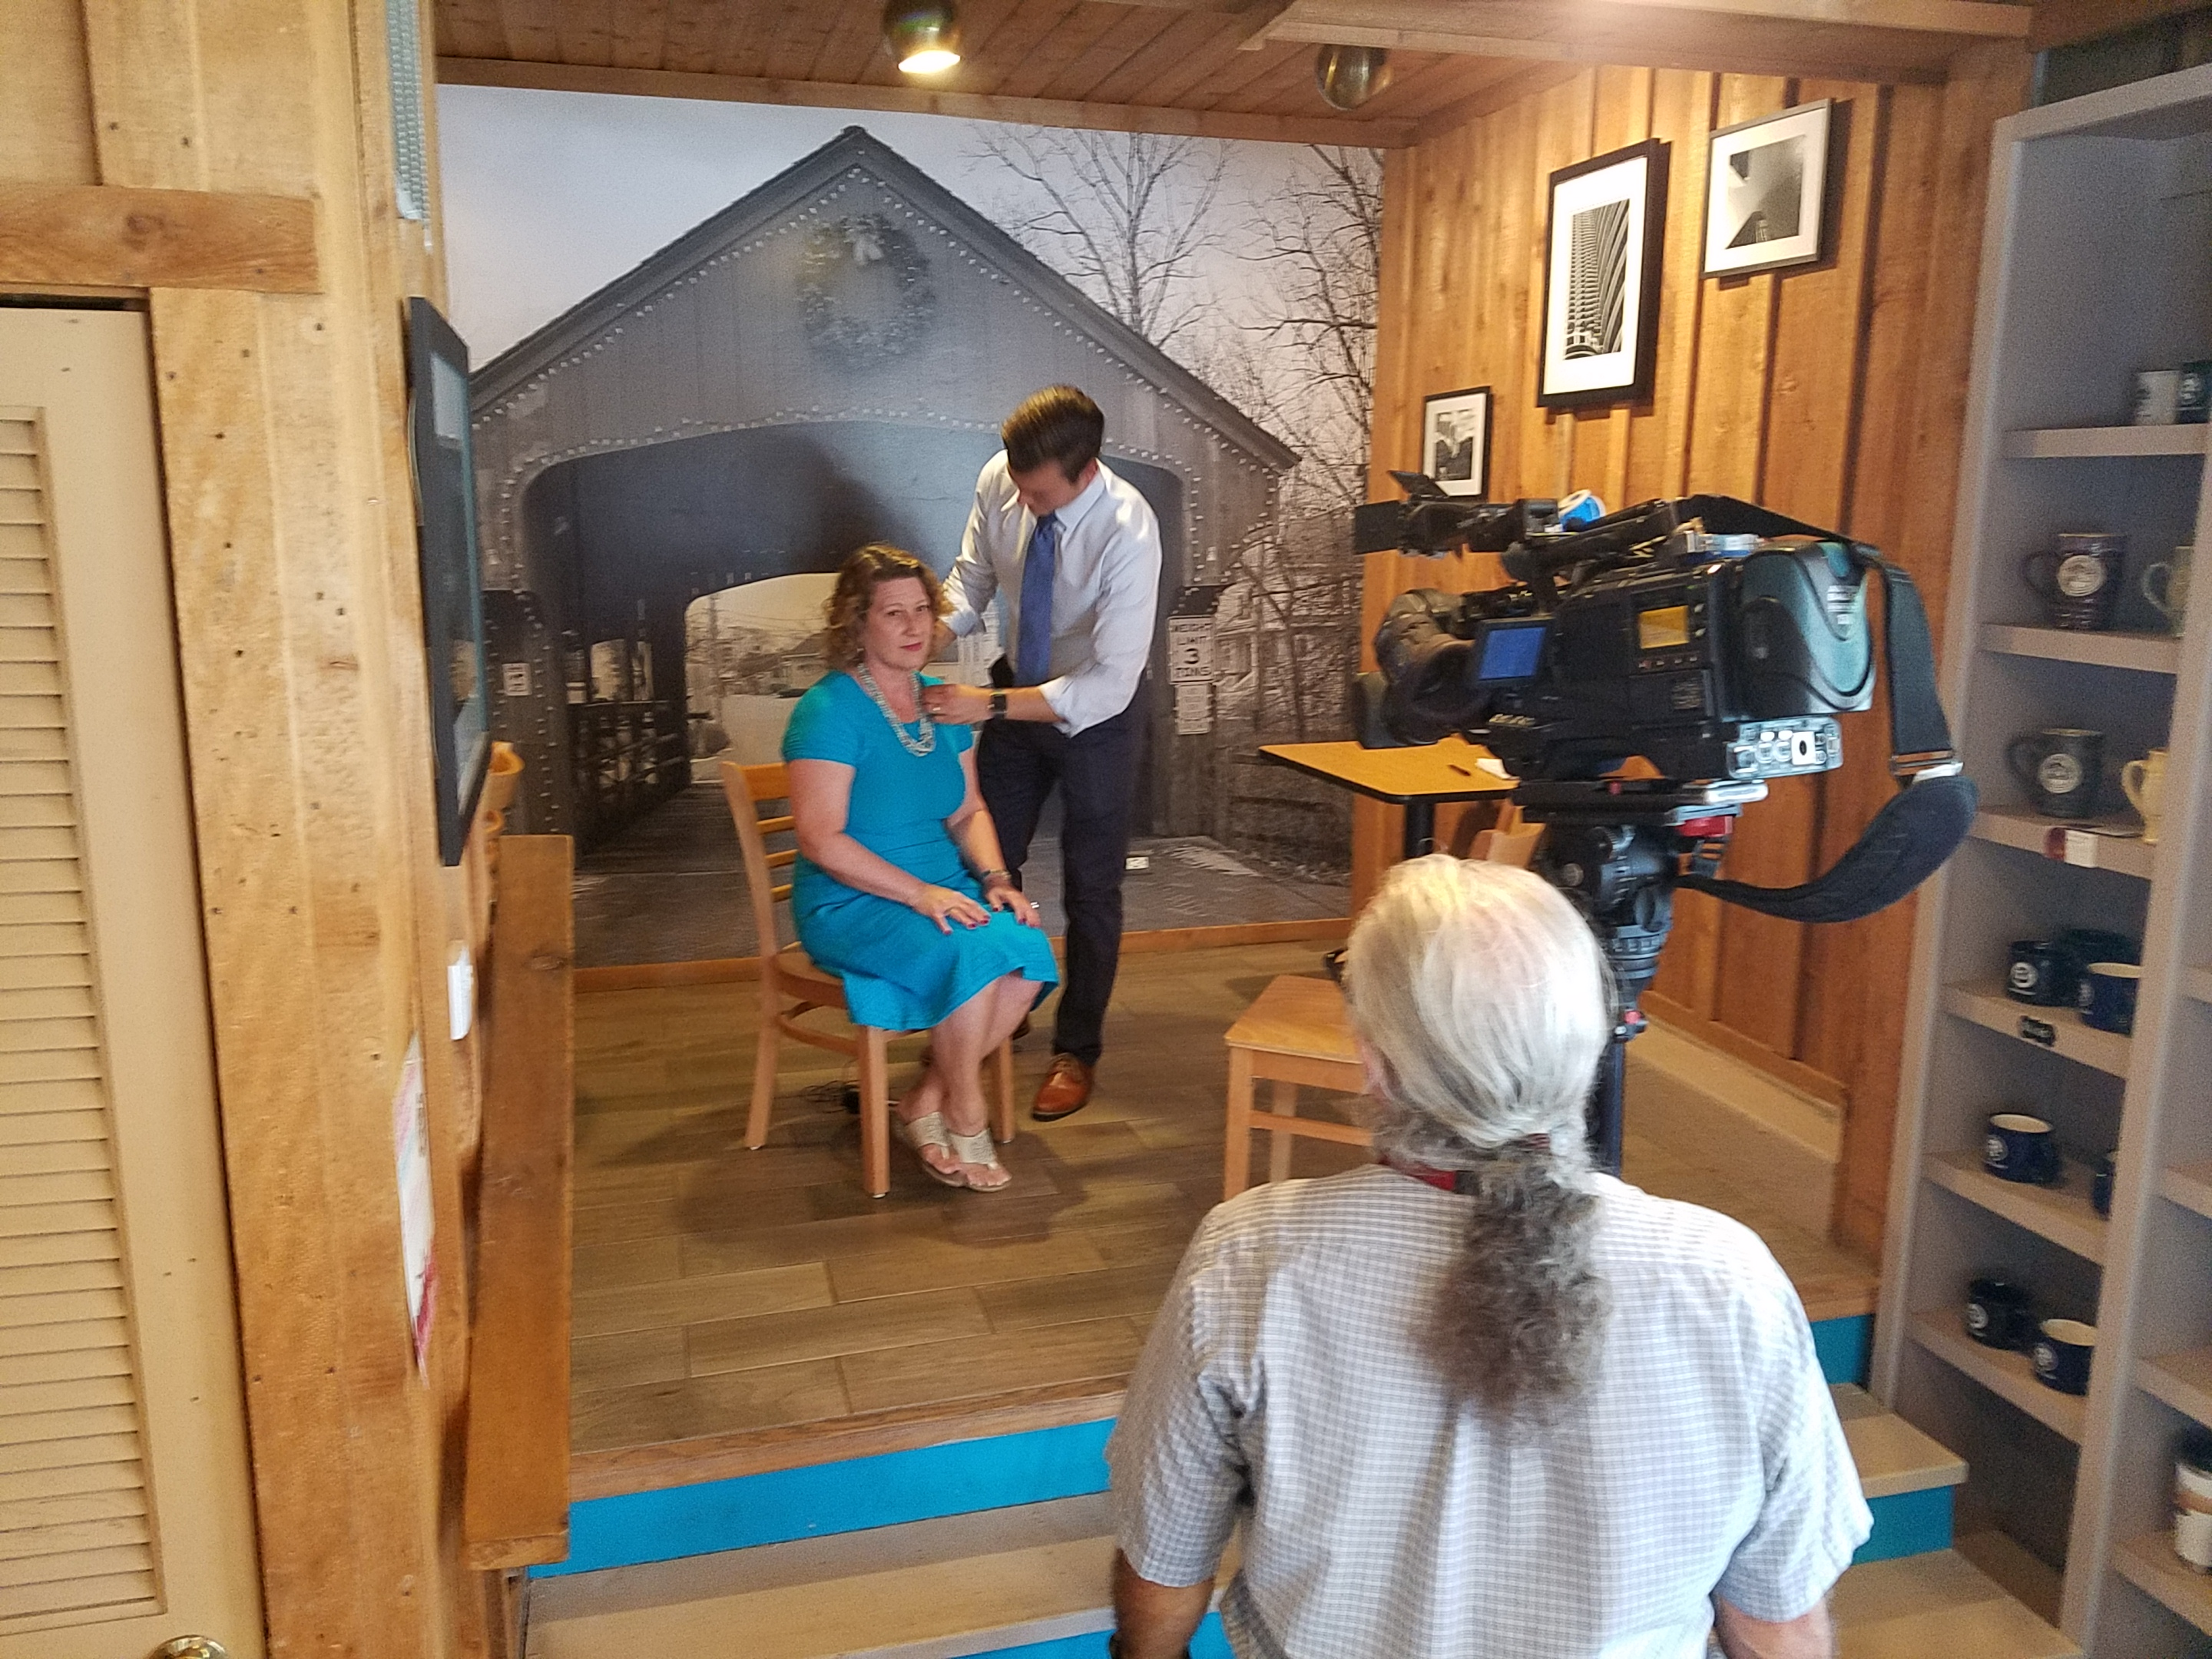 Lining up the camera shot and getting miked for my interview with ABC Channel 7's Mark Rivera inside the Covered Bridge Creamery.